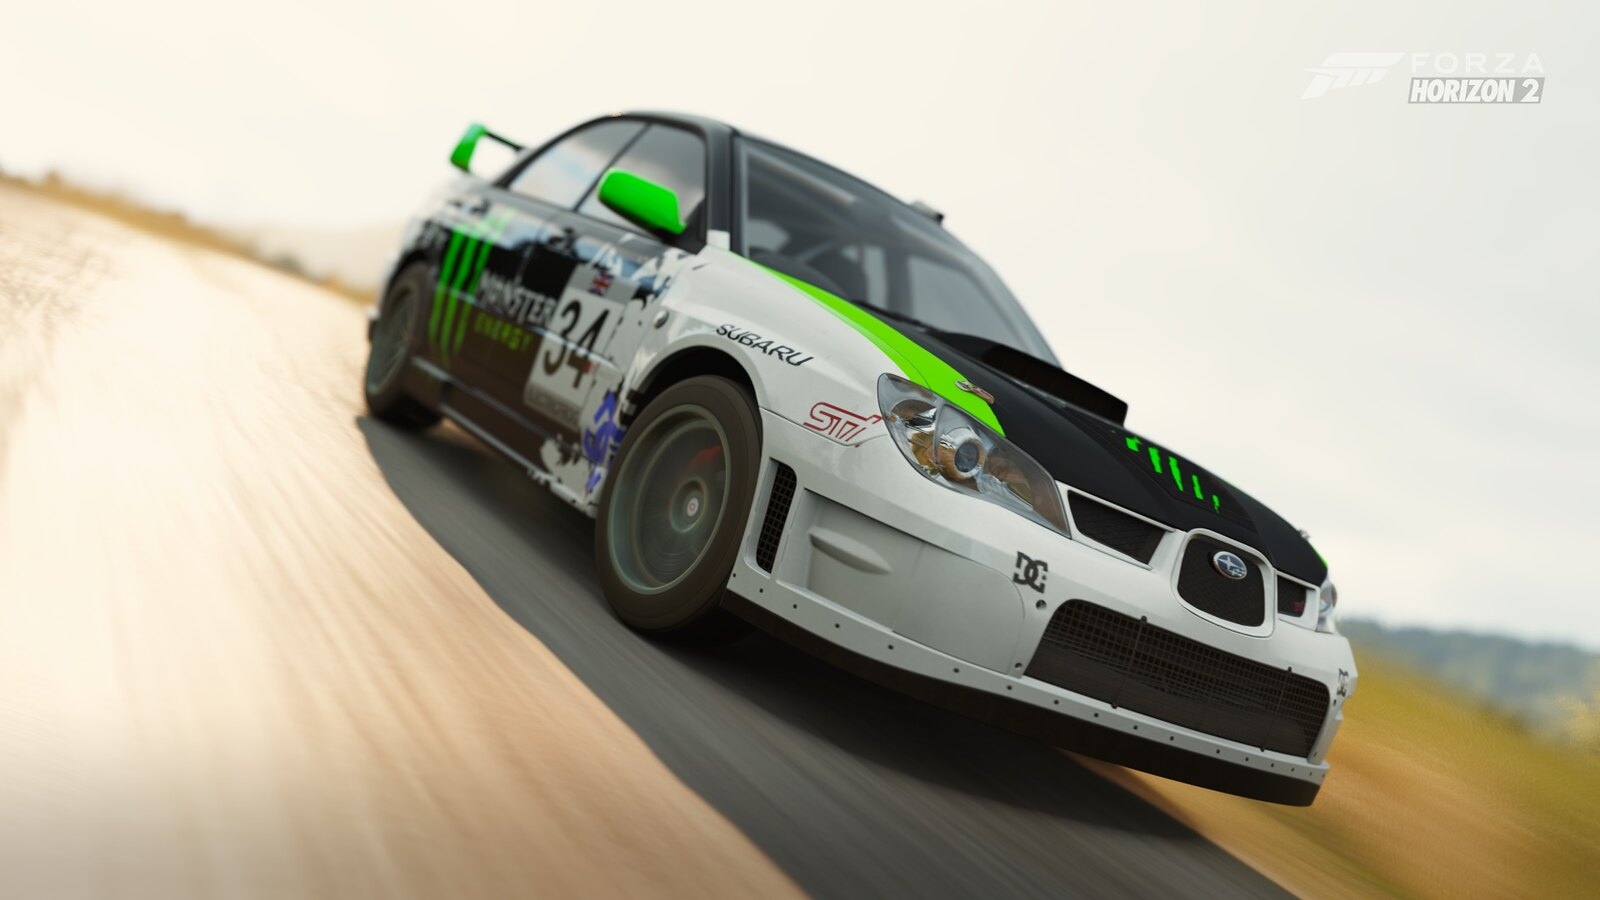 Amazing Beau Subaru Impreza WRX STI (Monster Energy) Flickr Gallery Https://flic